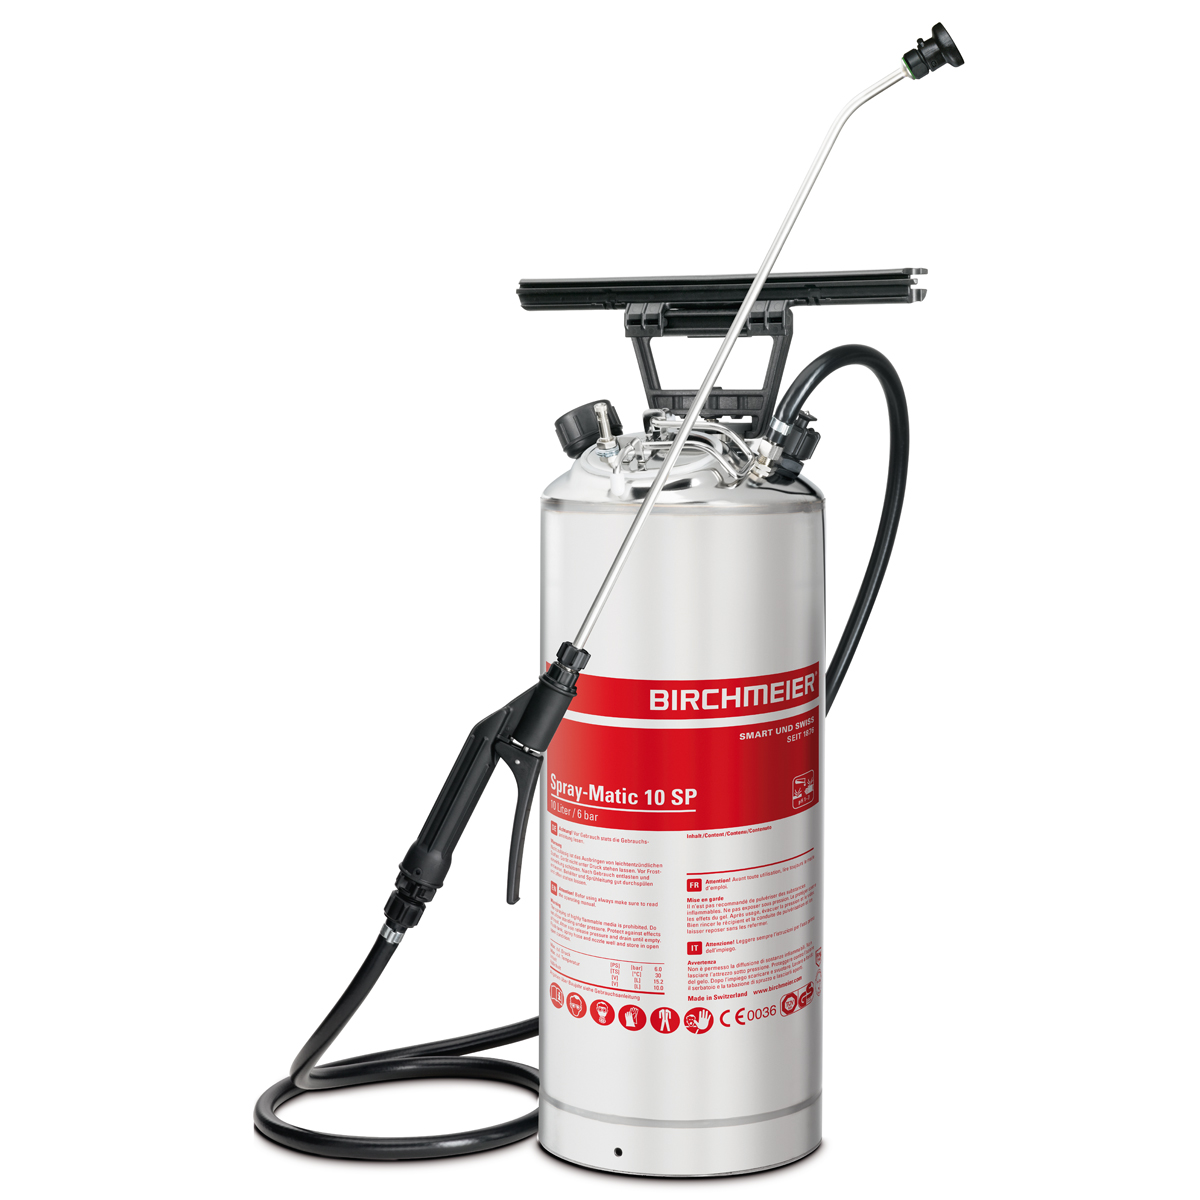 Spray-Matic 10 SP with compressed-air union